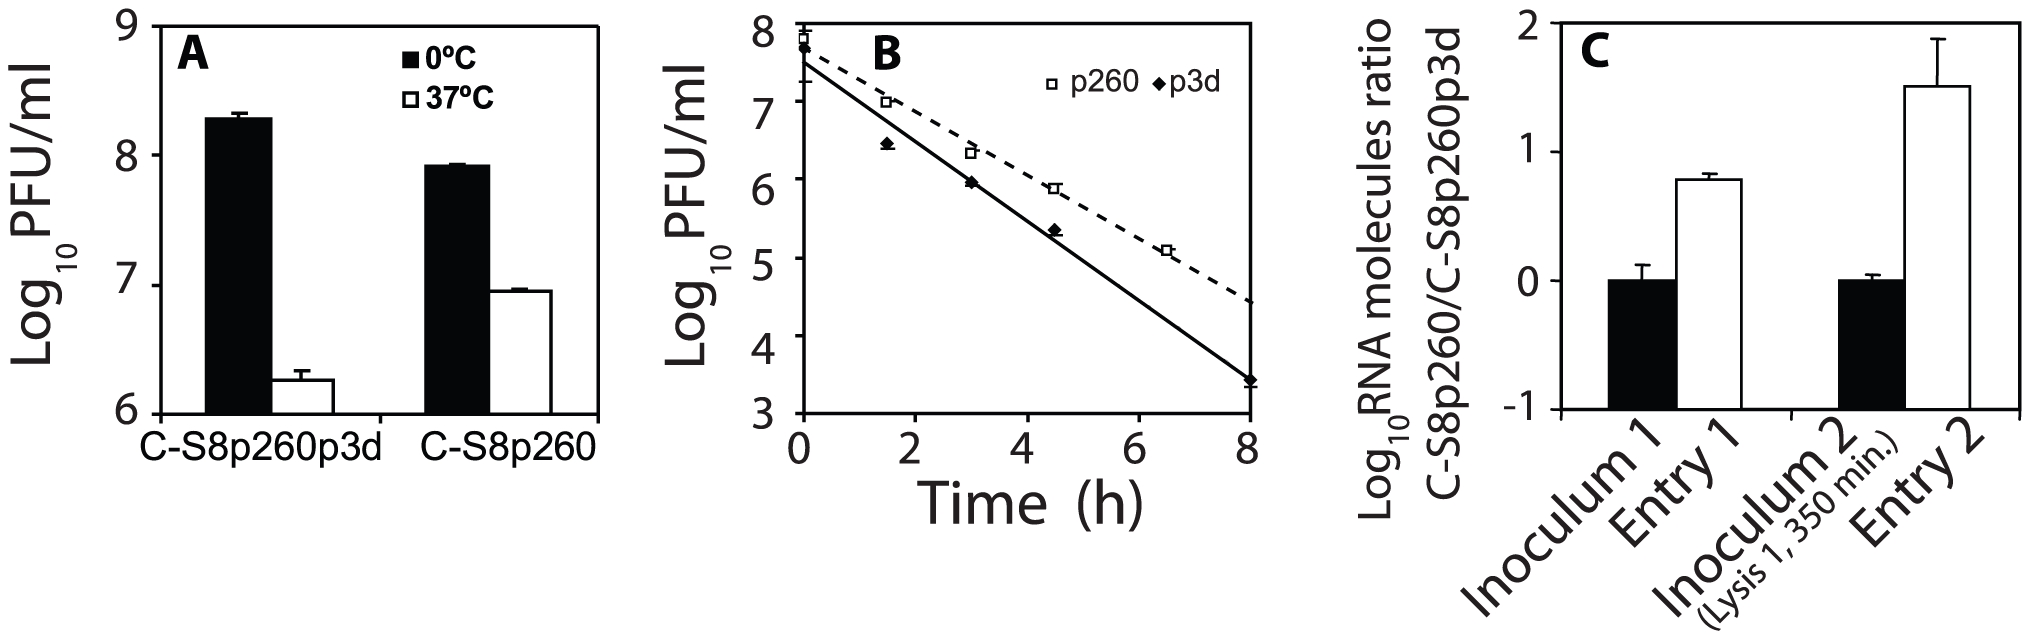 Decay of infectivity of FMDV particles.